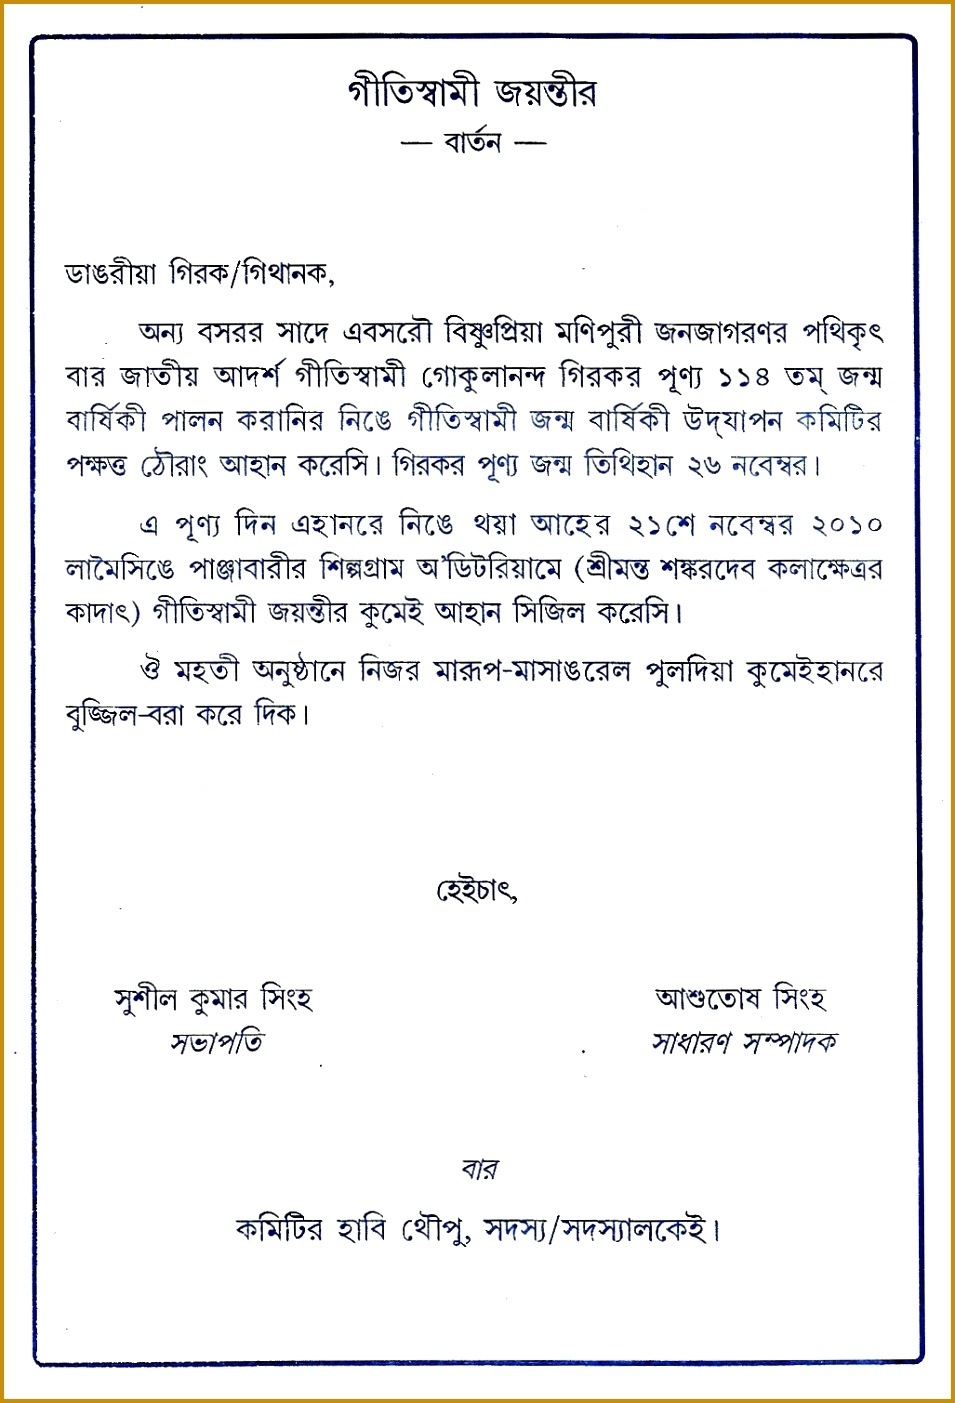 Invitation Letter As Chief Guest Inspirationalnew Sample Birthday Invitation Letter Best Party Ideas 1403955